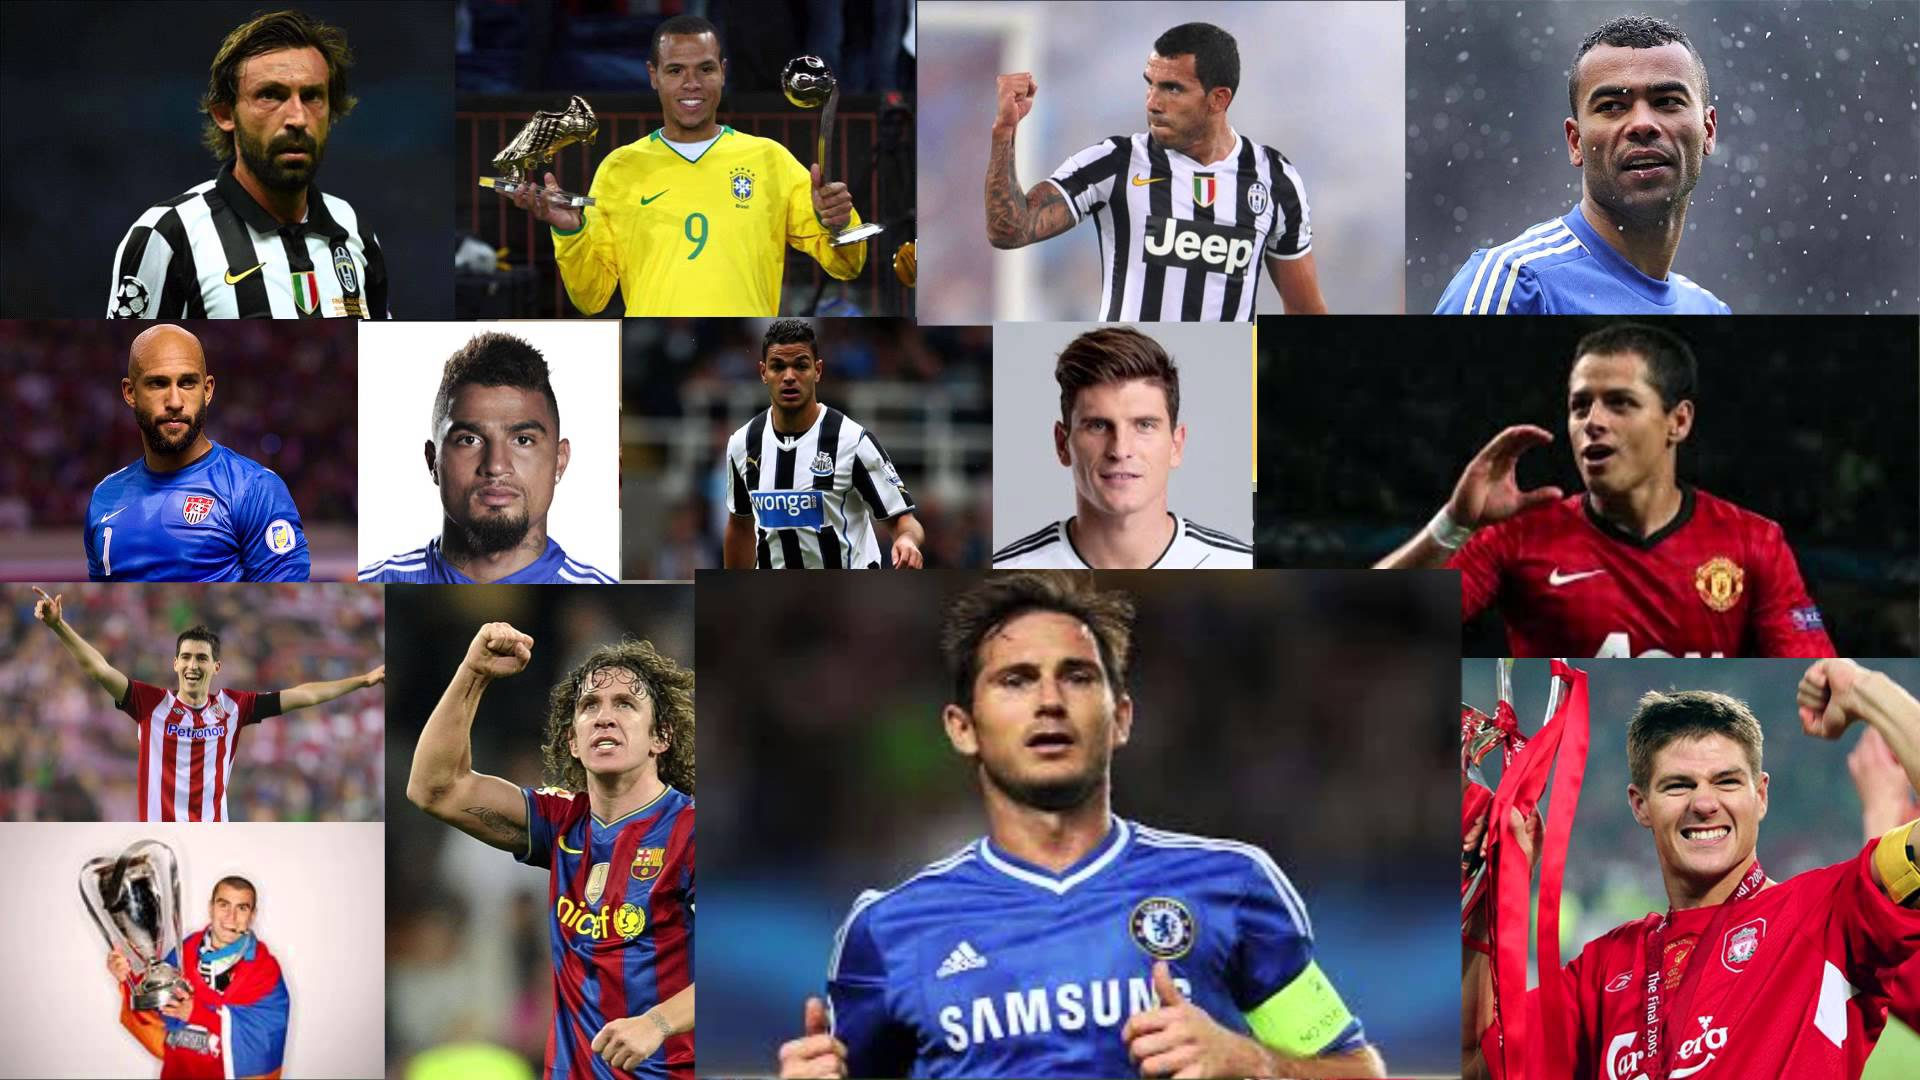 SOME OF THESE GUYS, BUT THEY ARENT ALL GOING TO PLAY WELL, AND SOME WOULD JUST RATHER RETIRE.